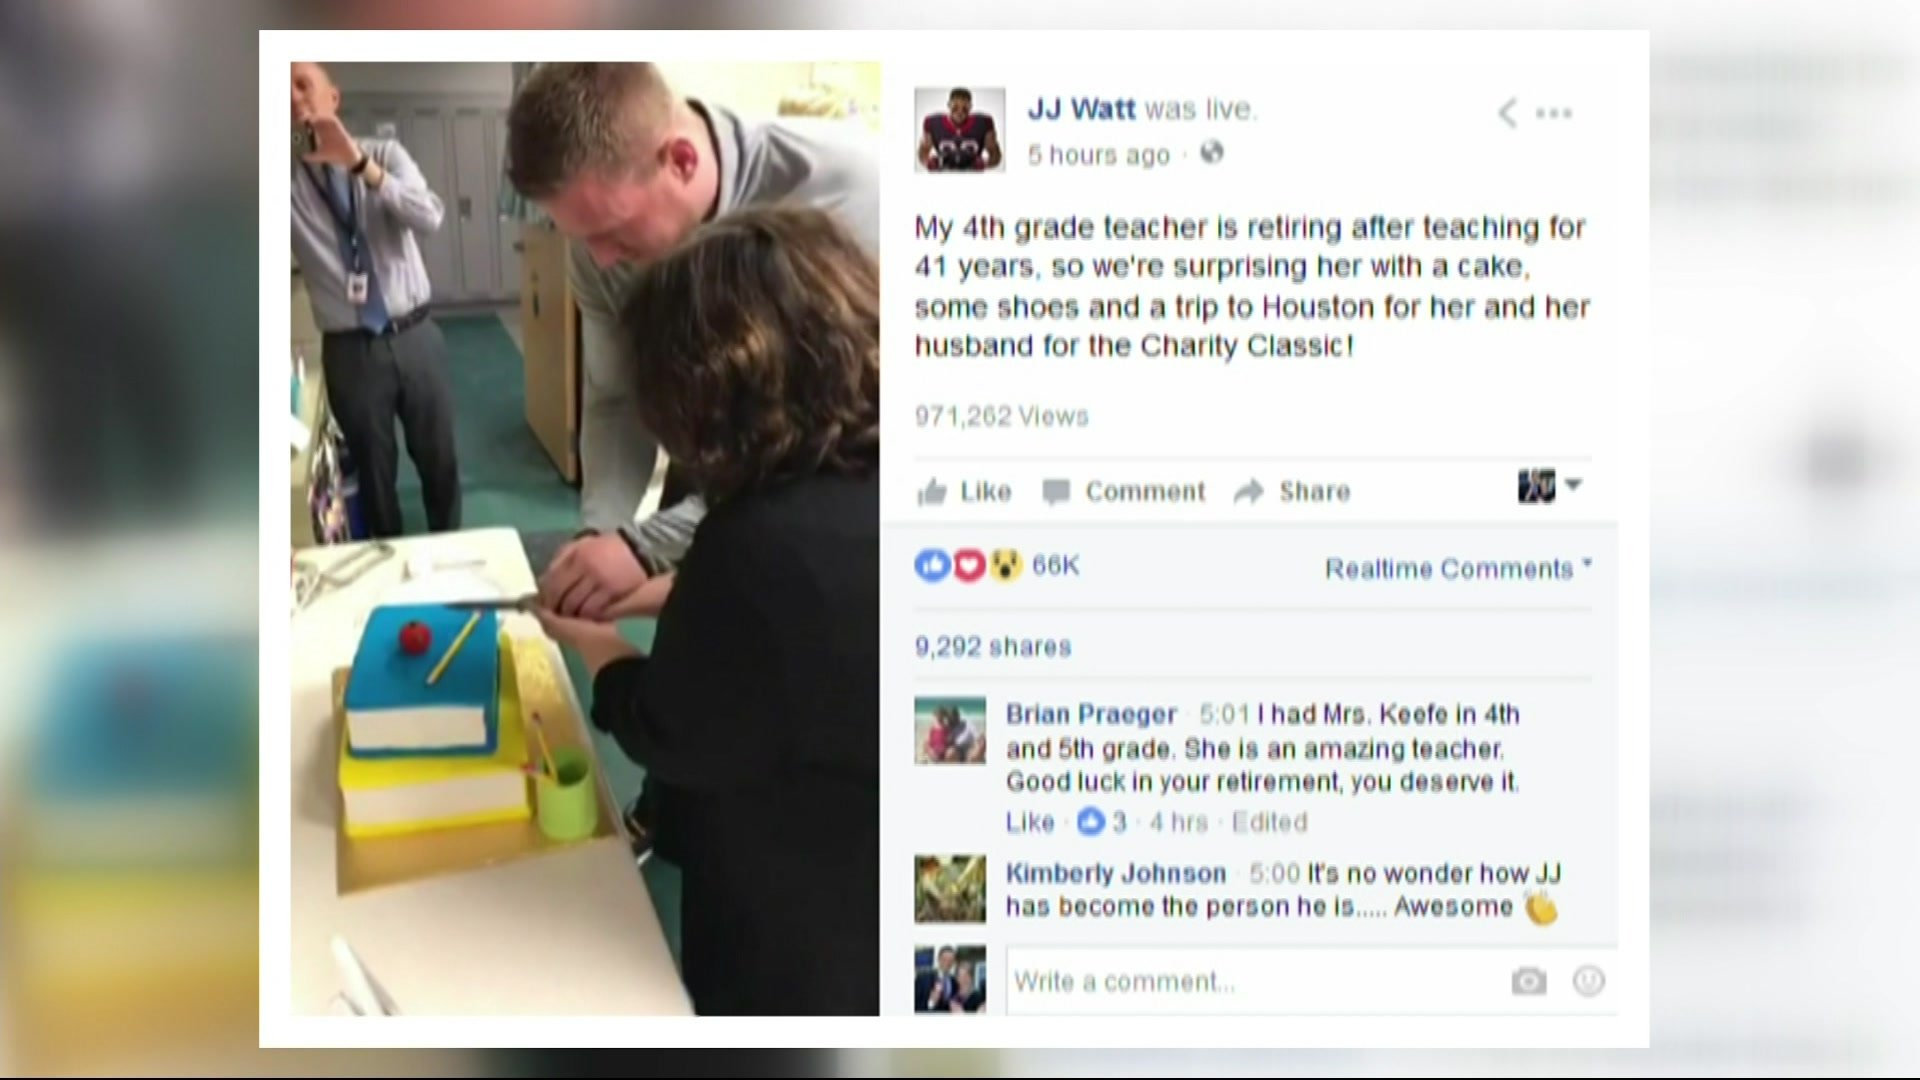 JJ Watt Surprises His 4th Grade Teacher, Gives Her Retirement Gifts